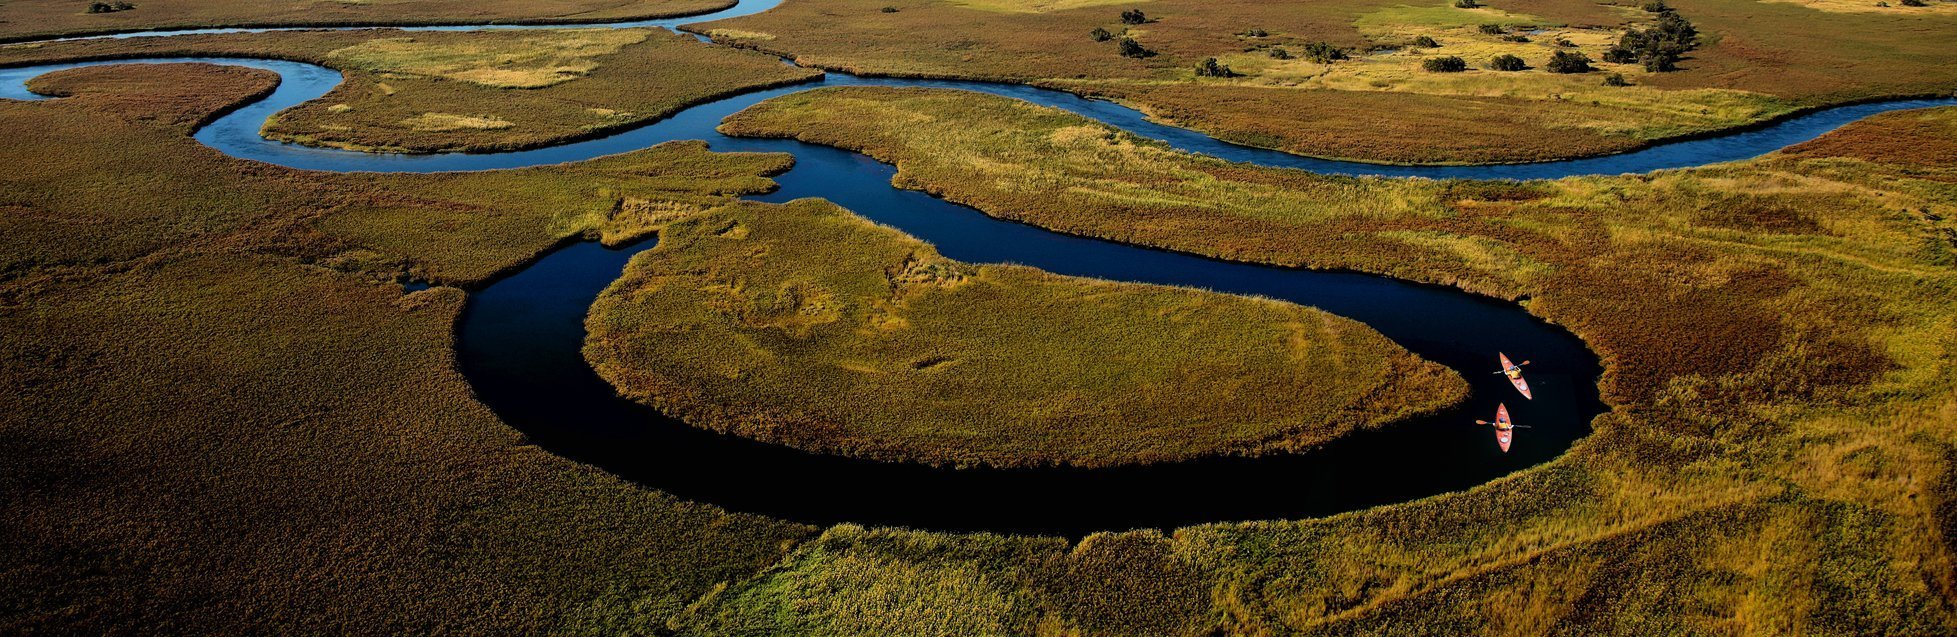 Two kayaks on the Okavango Delta